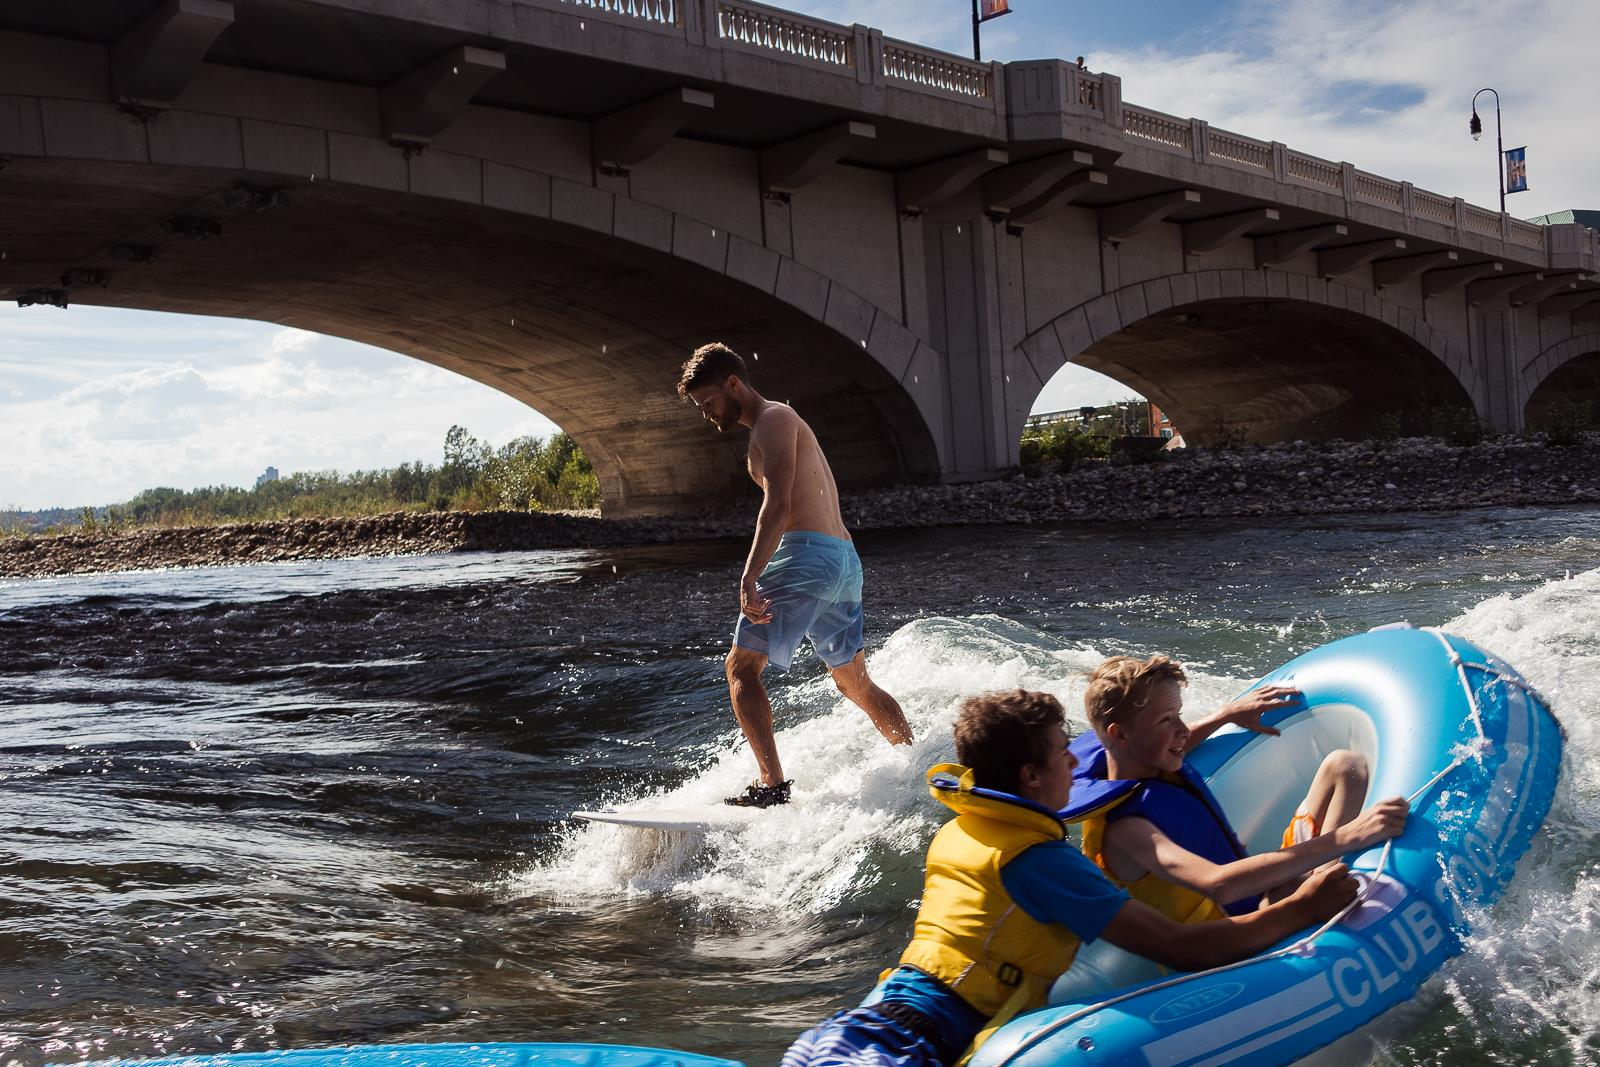 Rafting kids and a surfer at 10th Street Wave in Calgary